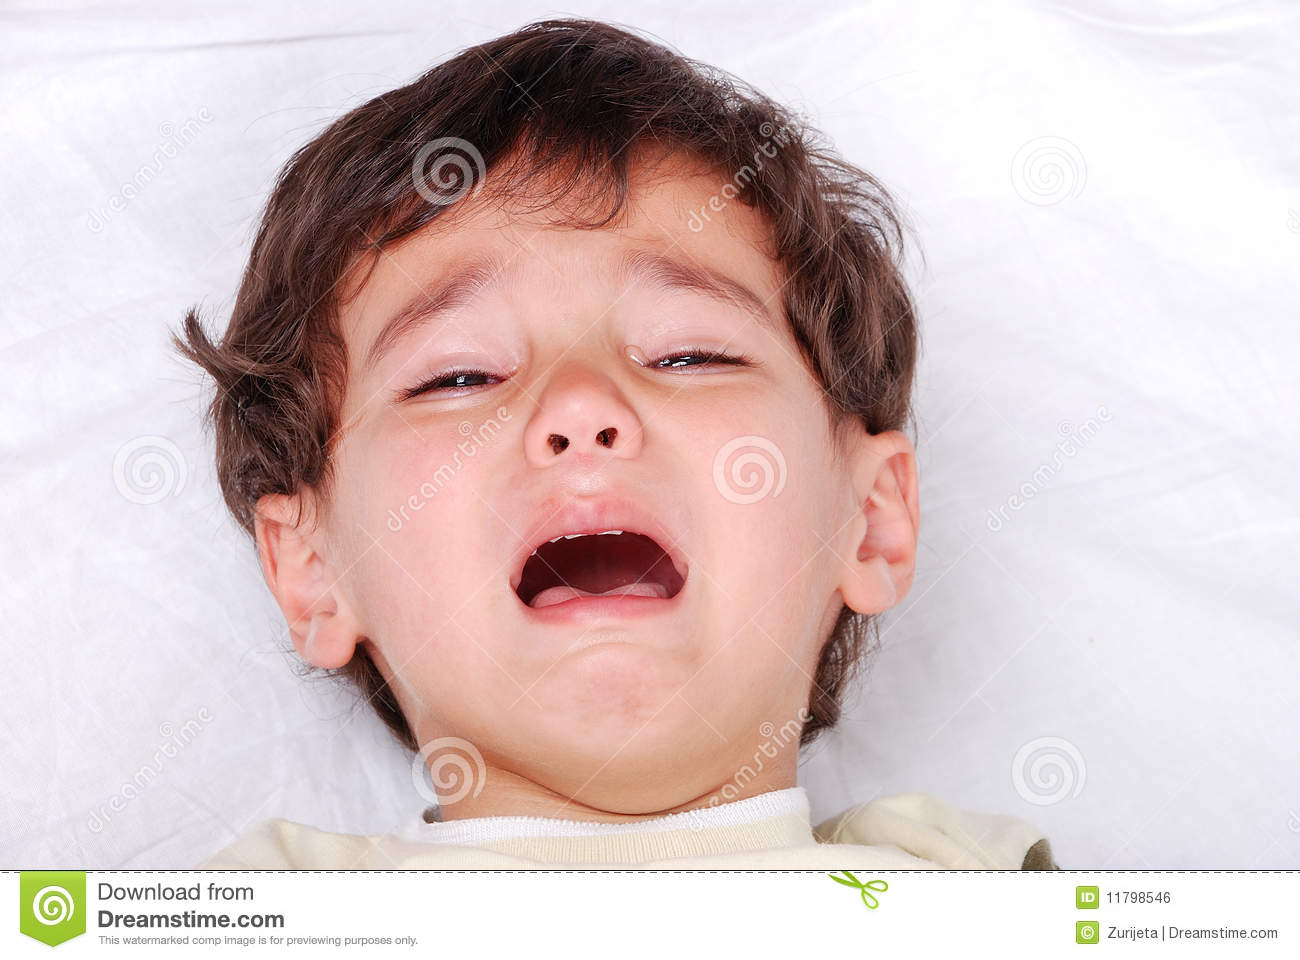 little cute kid is crying stock photo. image of background - 11798546